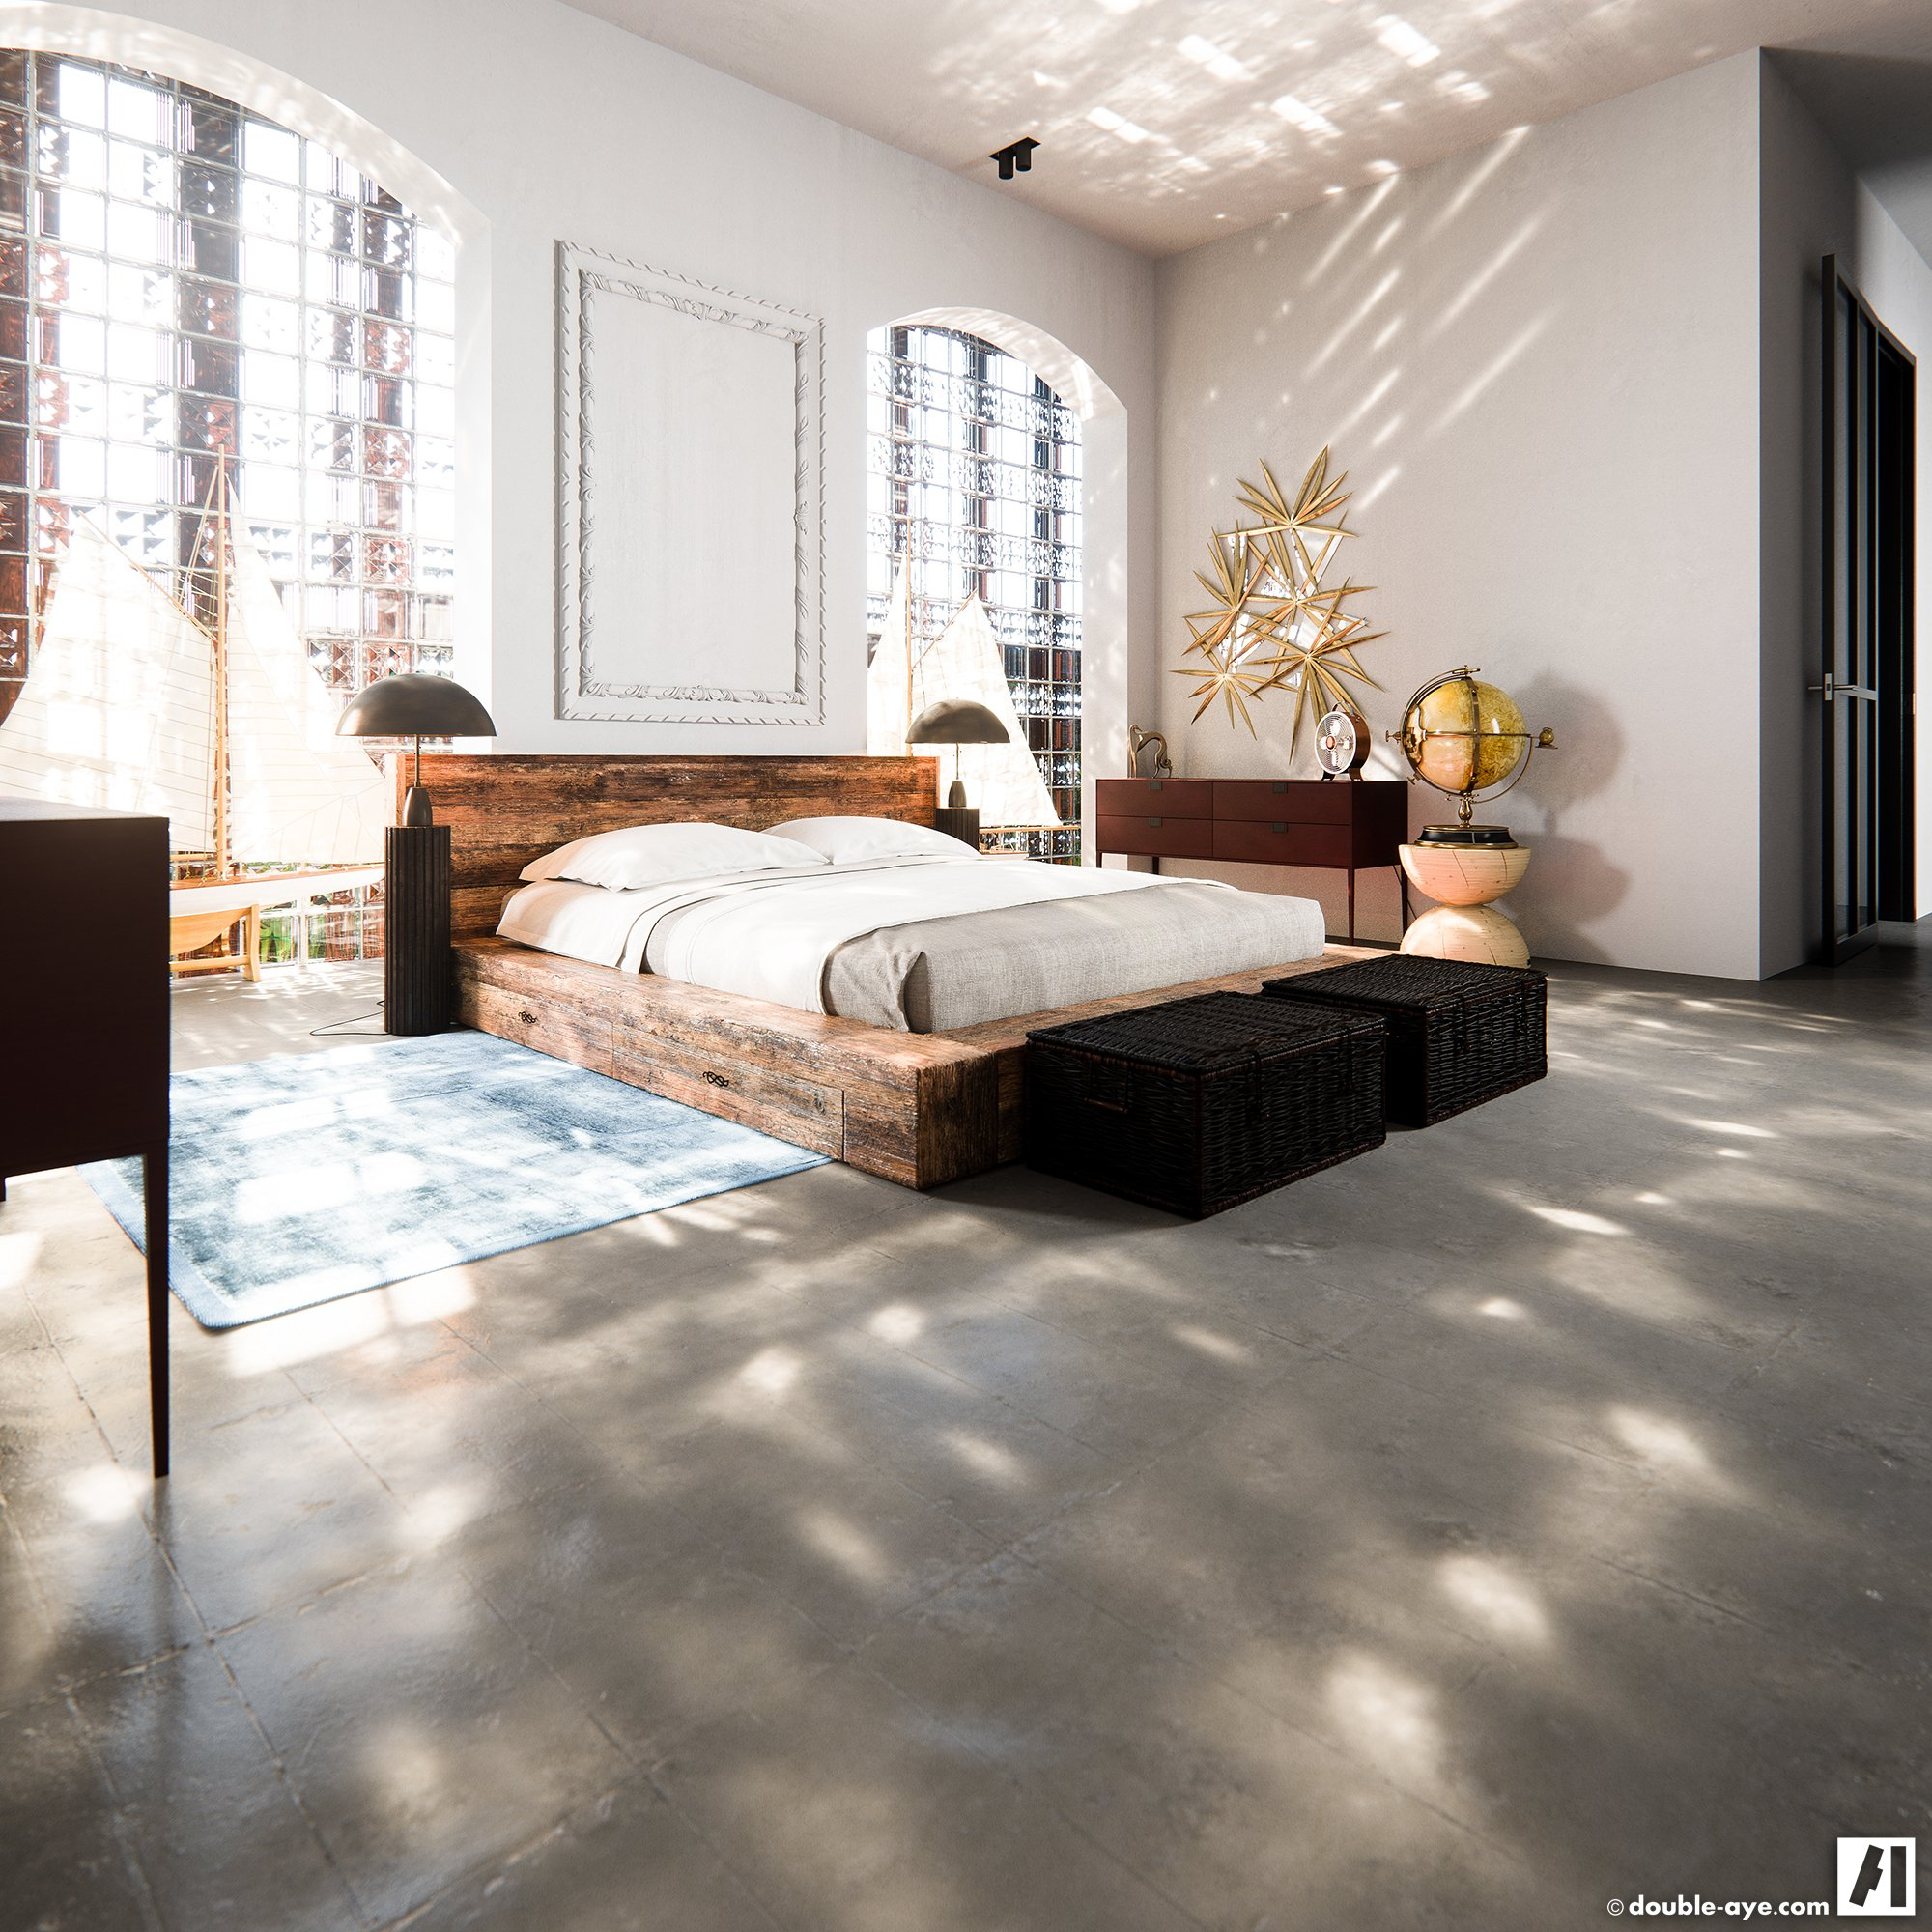 016_F_O_Bedroom_1_A_WEB